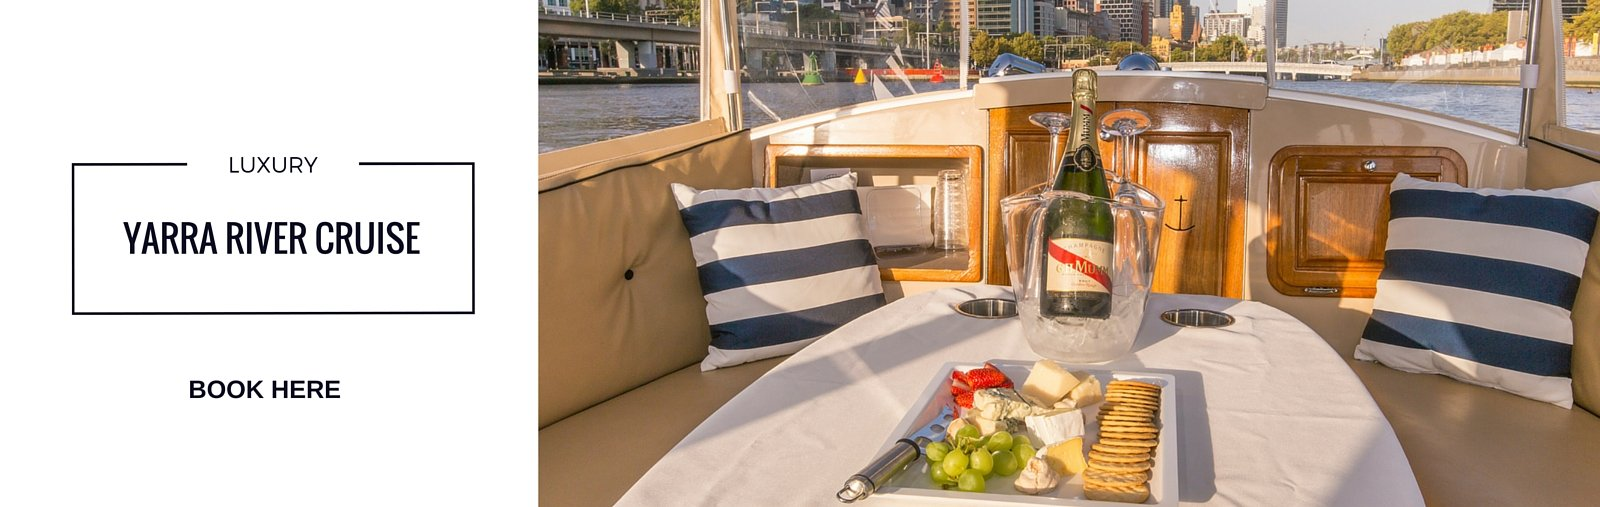 Book now your luxury Yarra River cruise